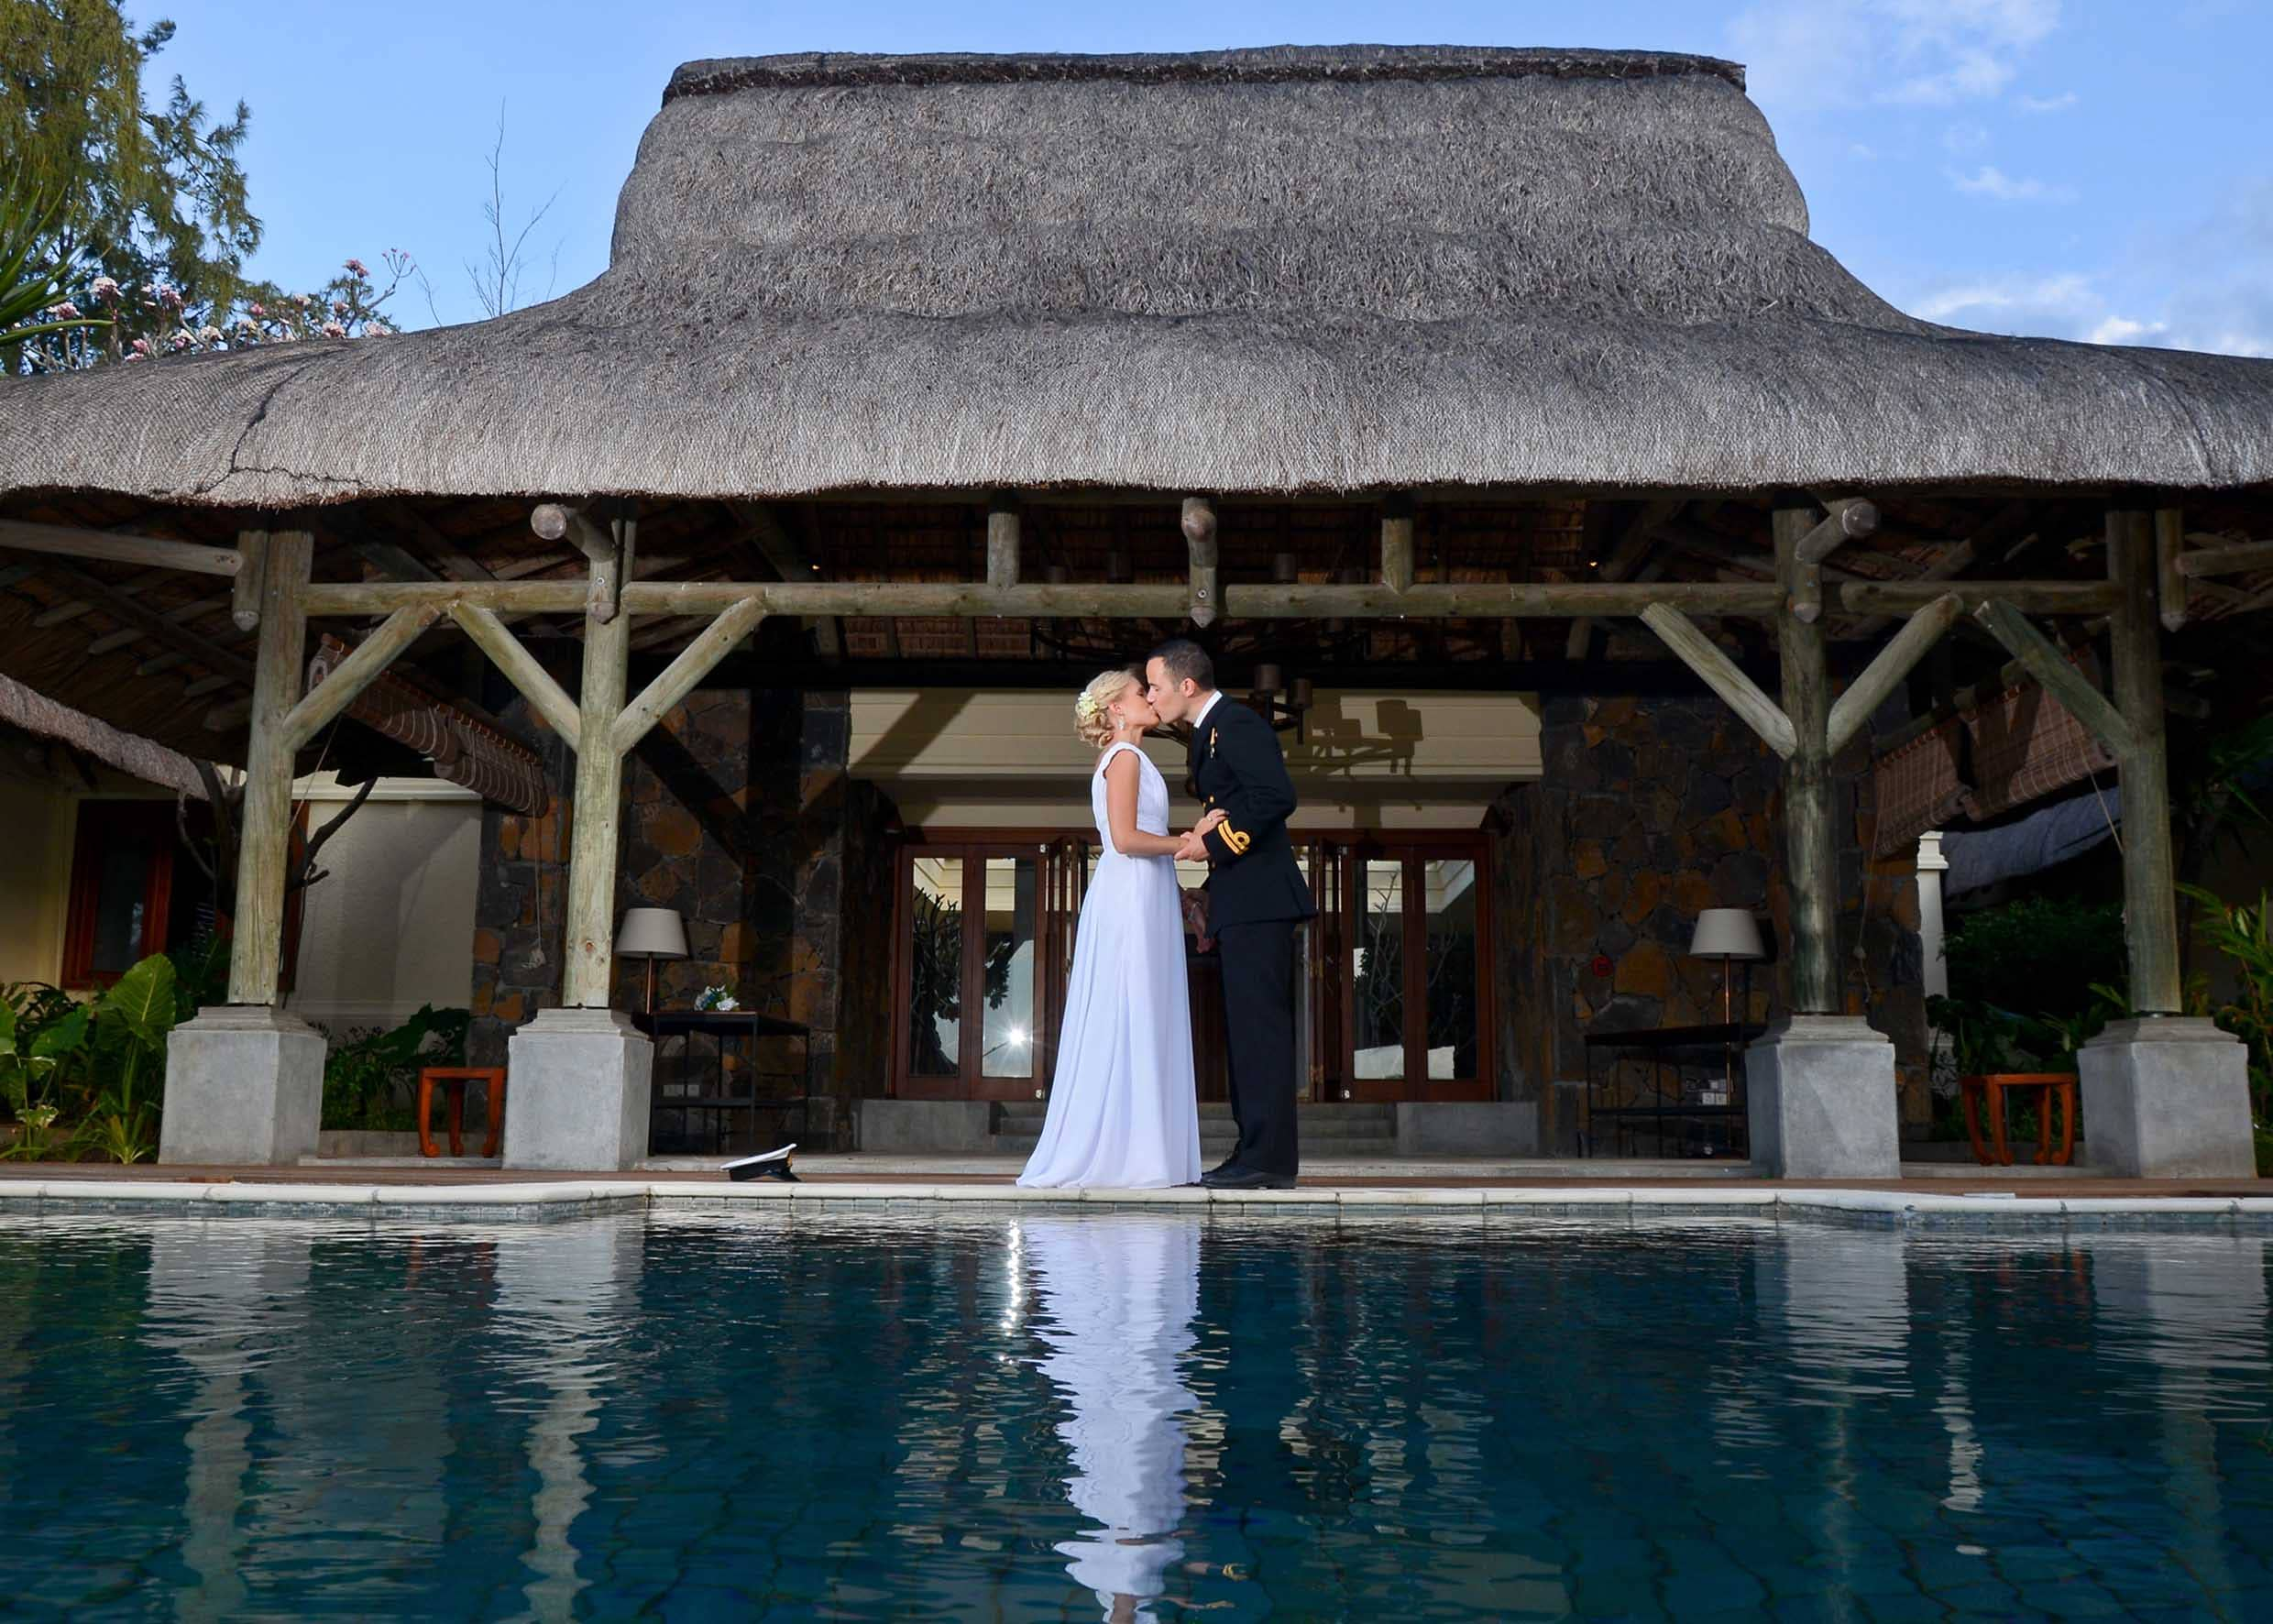 David and Carina Billam, wedding at Constance Le Prince Maurice, Mauritius